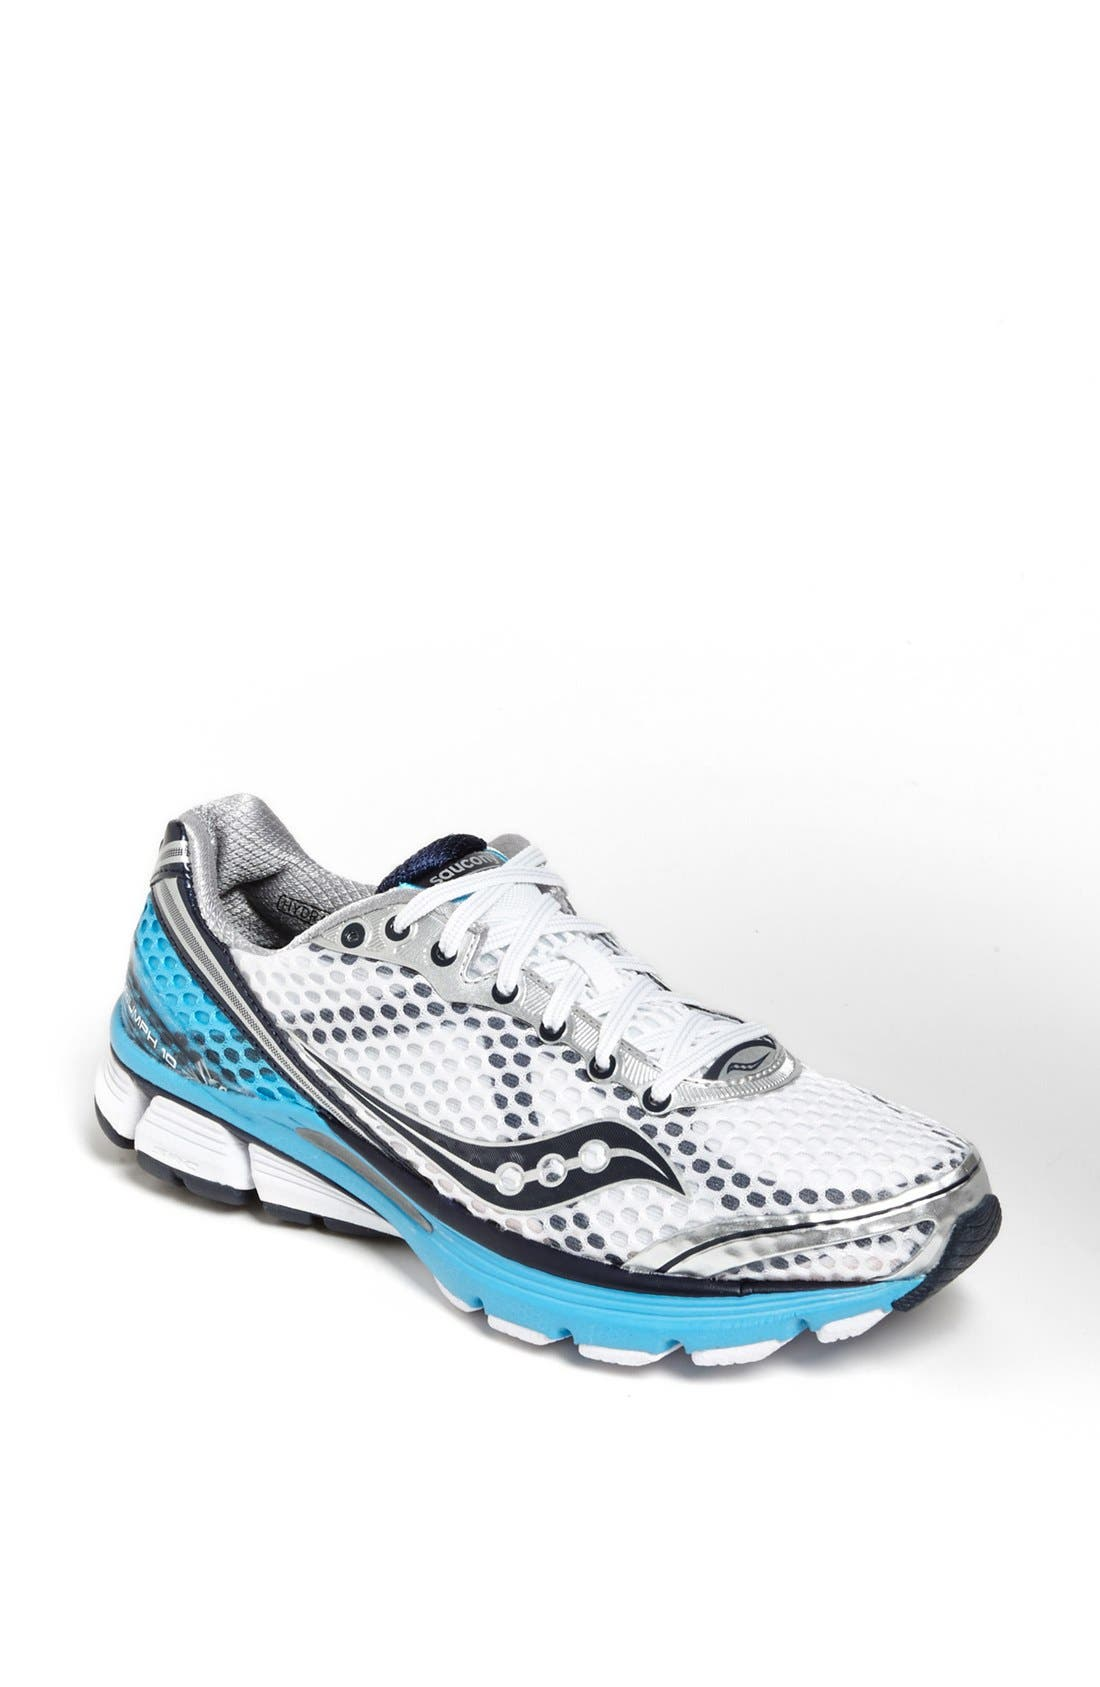 Alternate Image 1 Selected - Saucony 'PowerGrid Triumph 10' Running Shoe (Women)